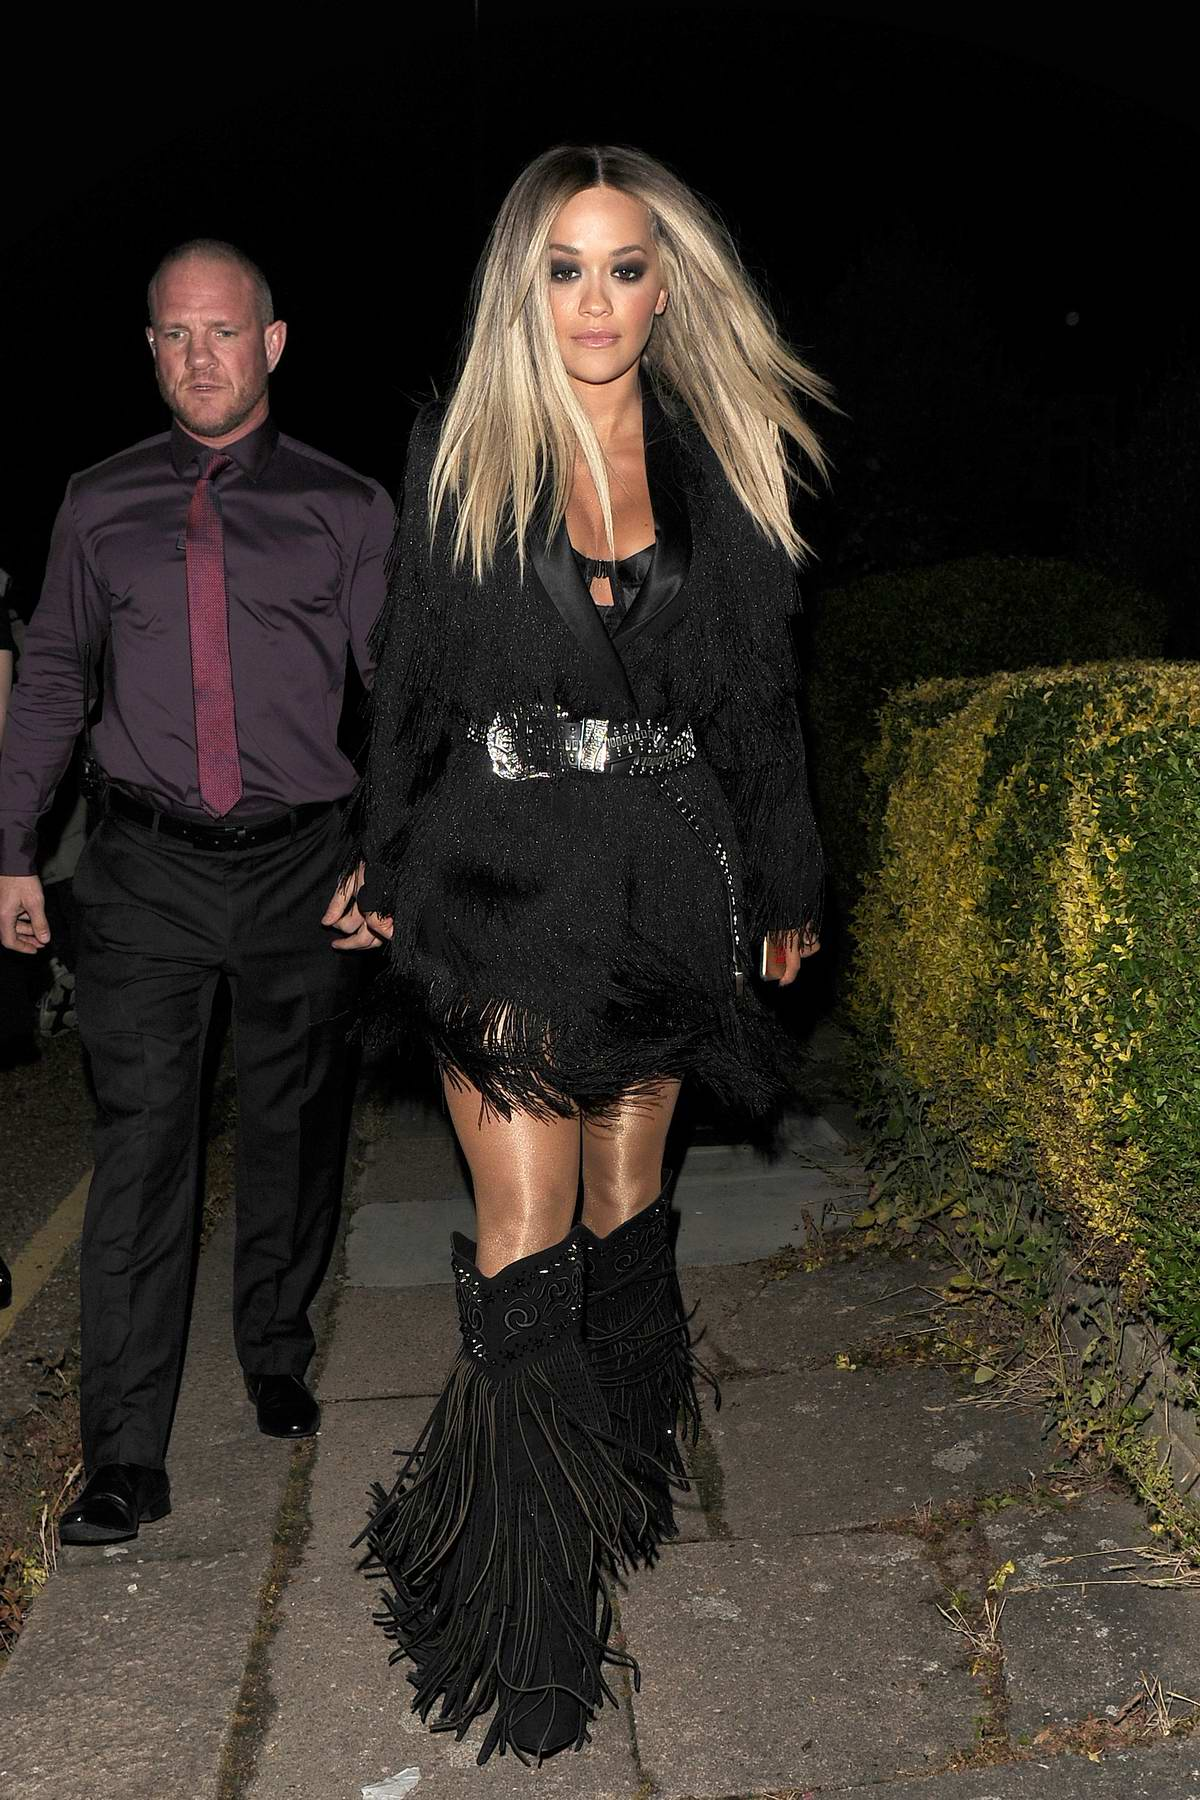 Rita Ora puts on a stylish display in tasseled black cowboy boots with a black dress while out in London, UK